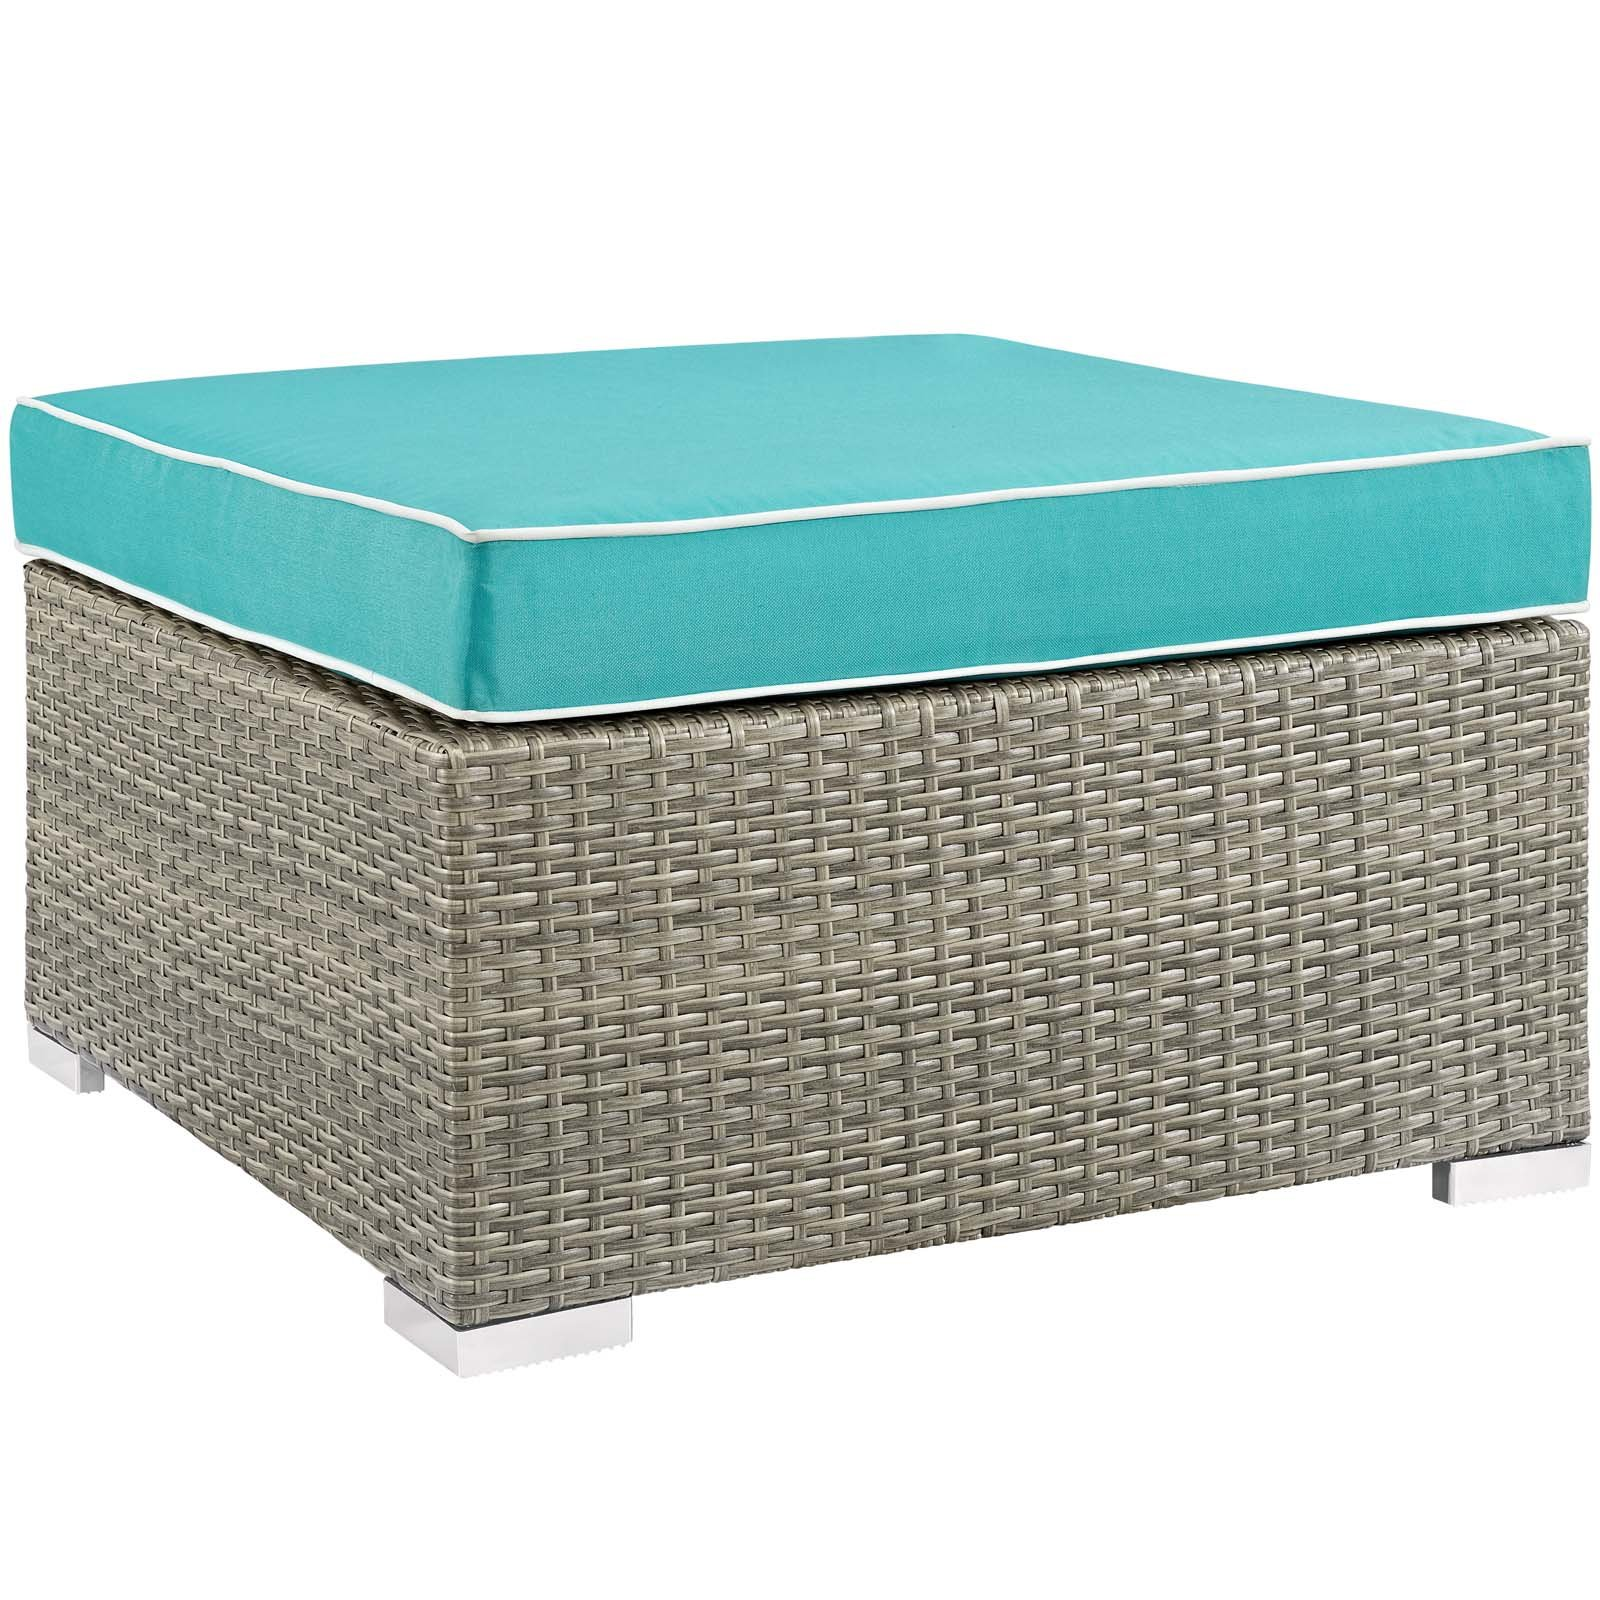 Modway EEI-2962-LGR-TRQ Repose Outdoor Patio Upholstered Fabric, Ottoman, Light Gray Turquoise by Modway